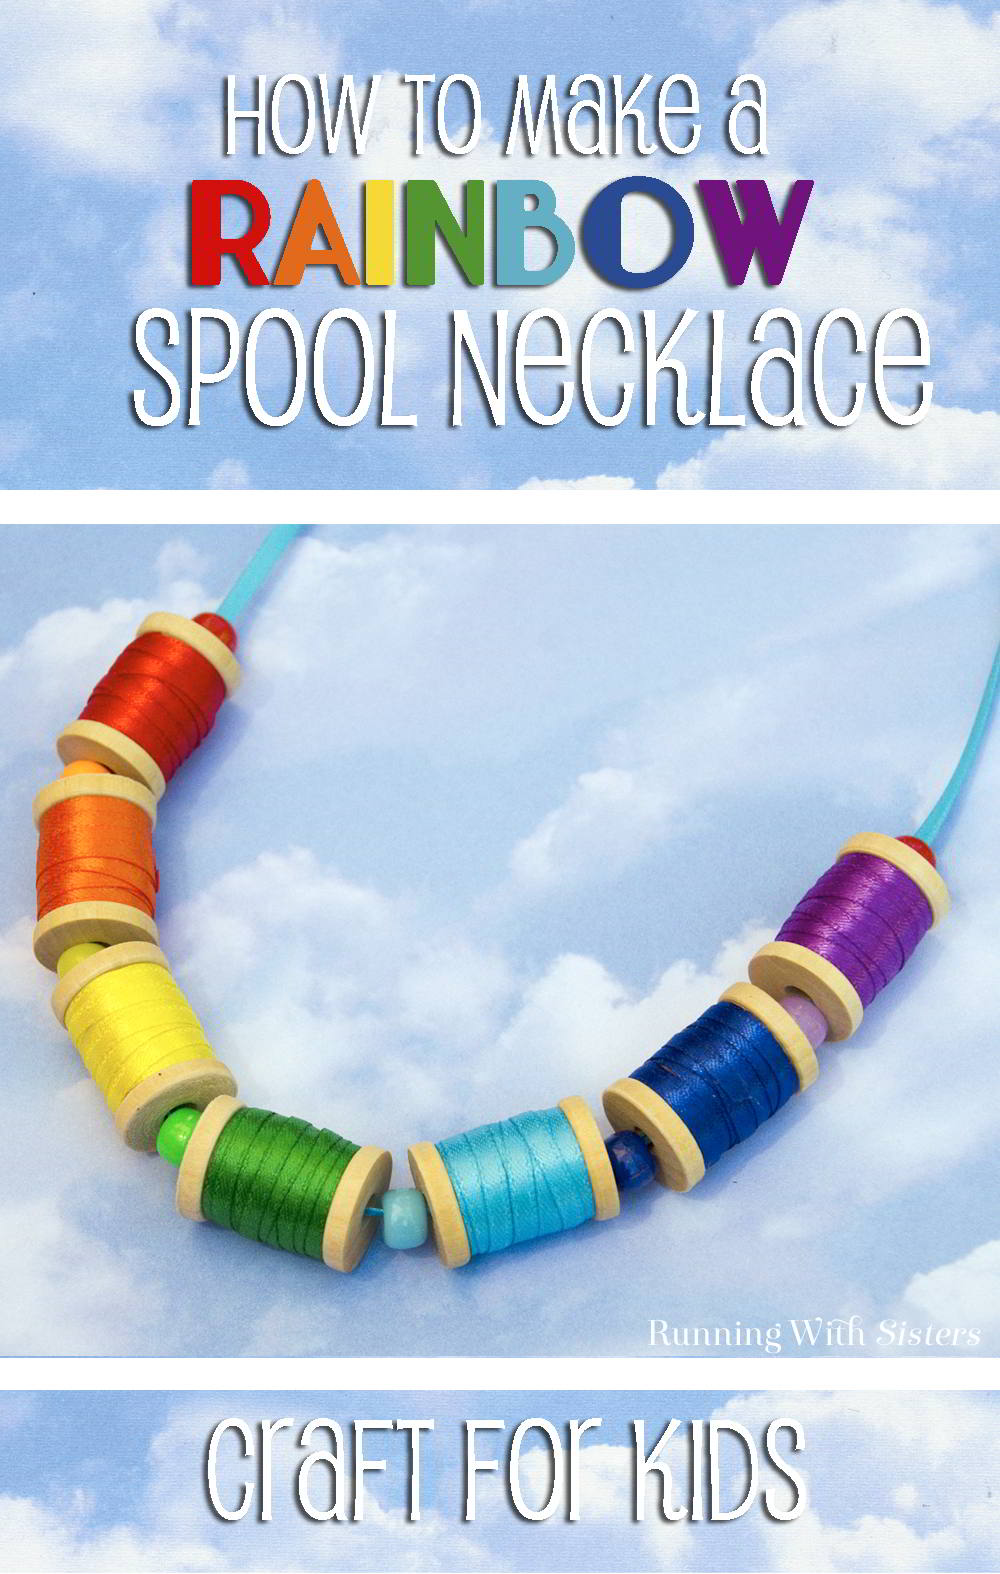 Here's a fun craft to make with kids for St.Patrick's Day, a Rainbow Spool Necklace! Wrap craft spools with ribbon and add pony beads to make a rainbow!